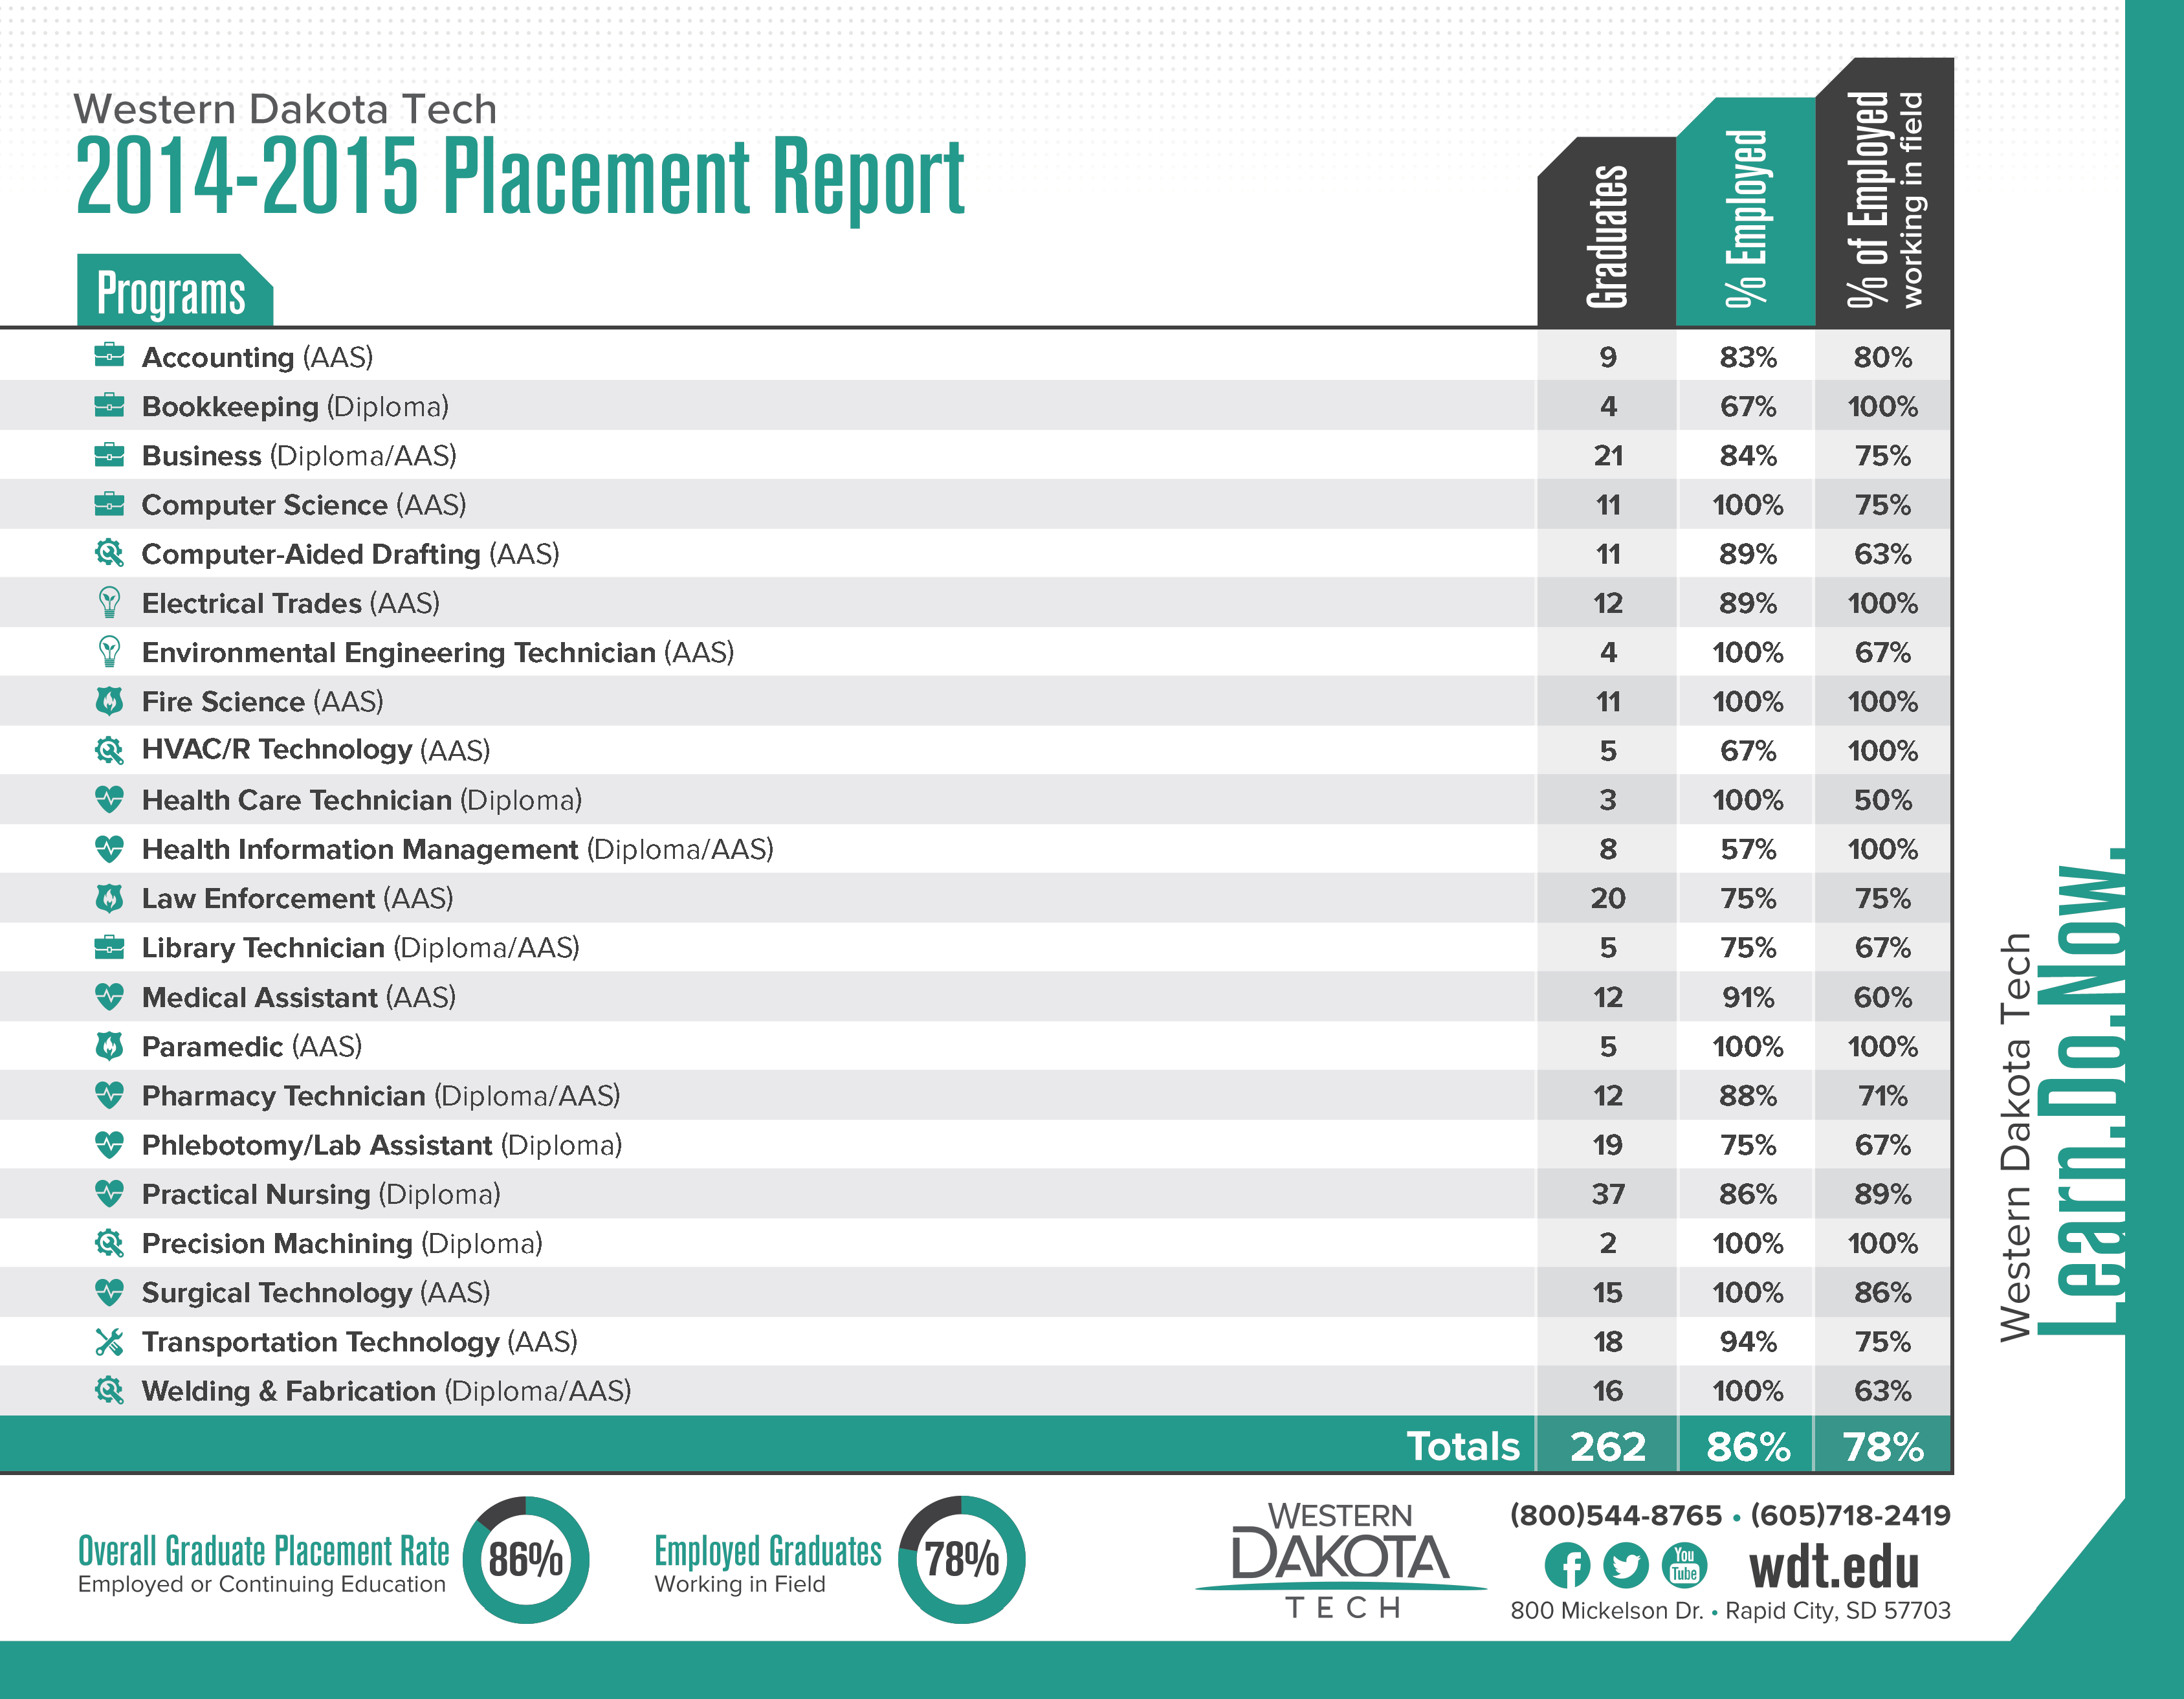 Image of the 2014-2015 Placement Report.